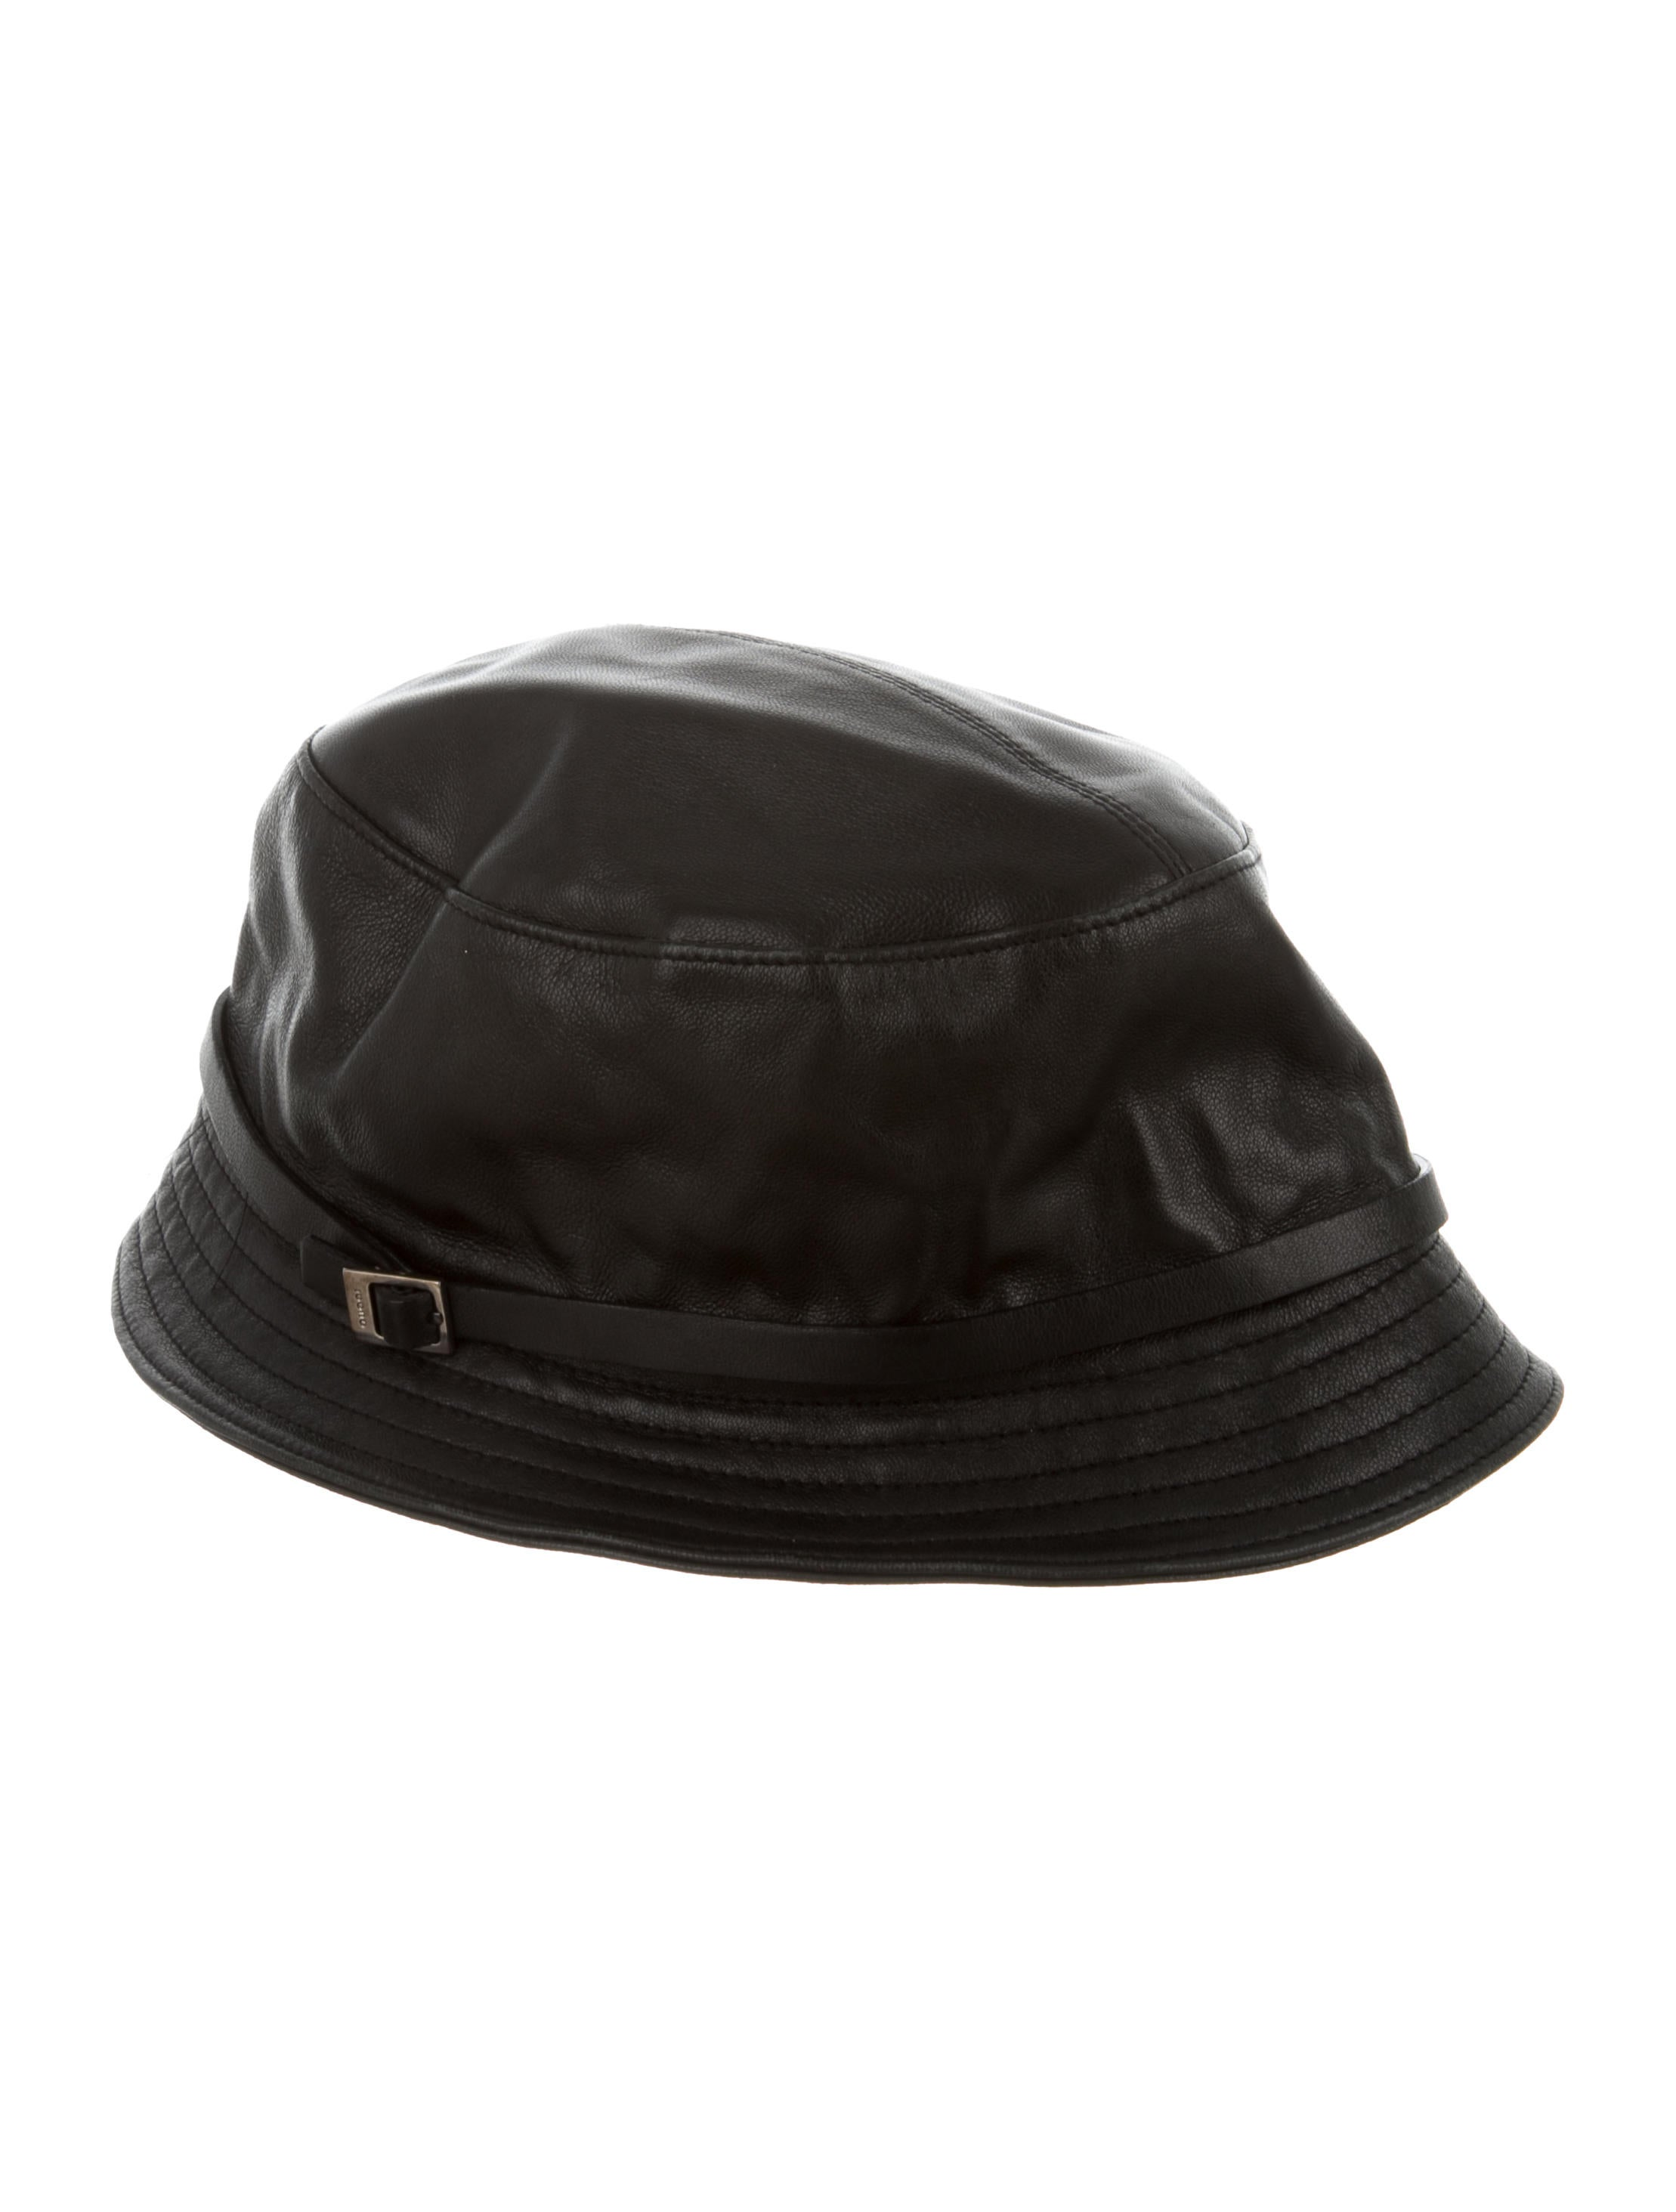 b92256d1c2e7 Gucci Leather Bucket Hat w  Tags - Accessories - GUC264892